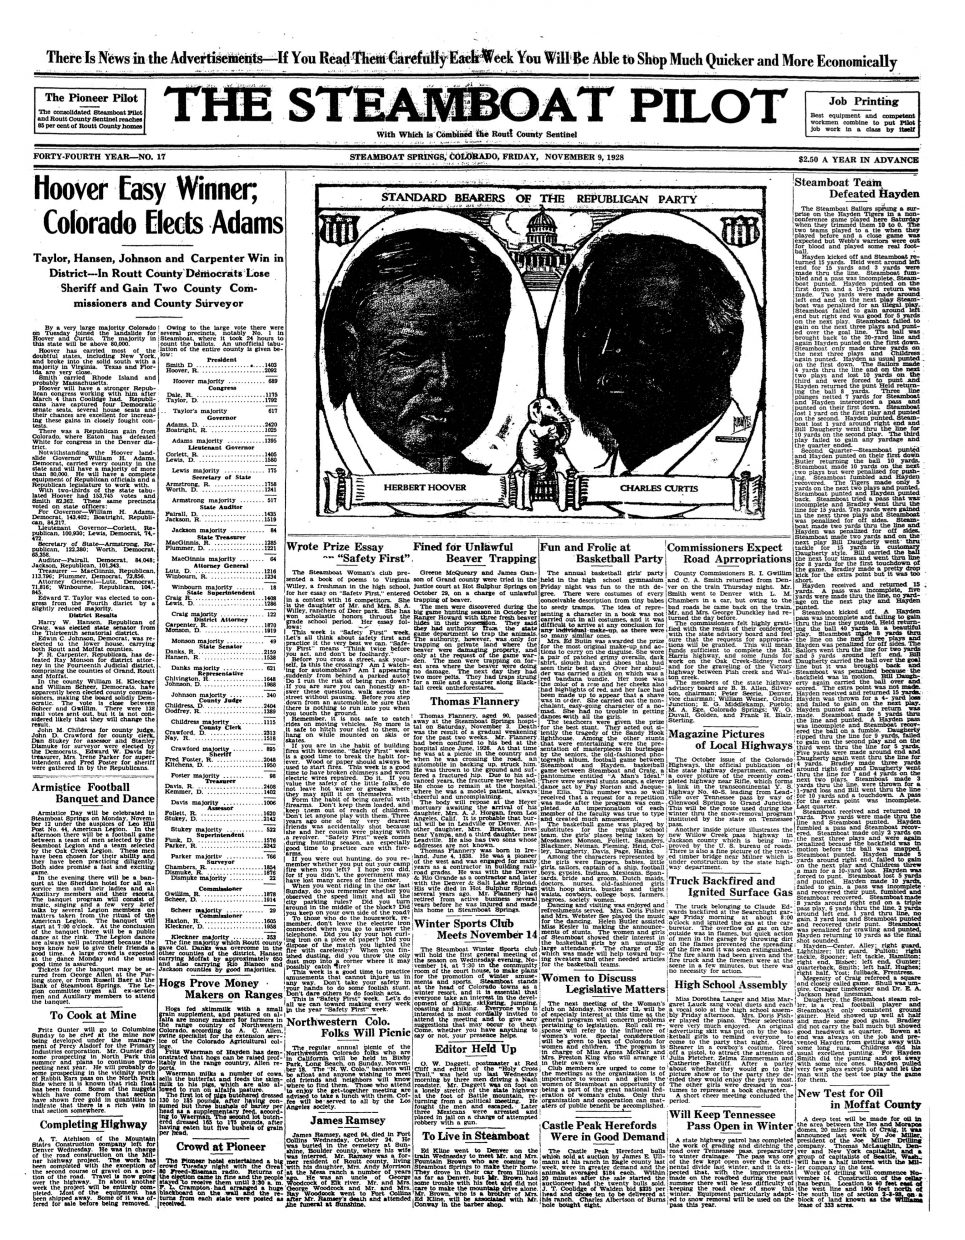 Front page 1928 Steamboat Pilot